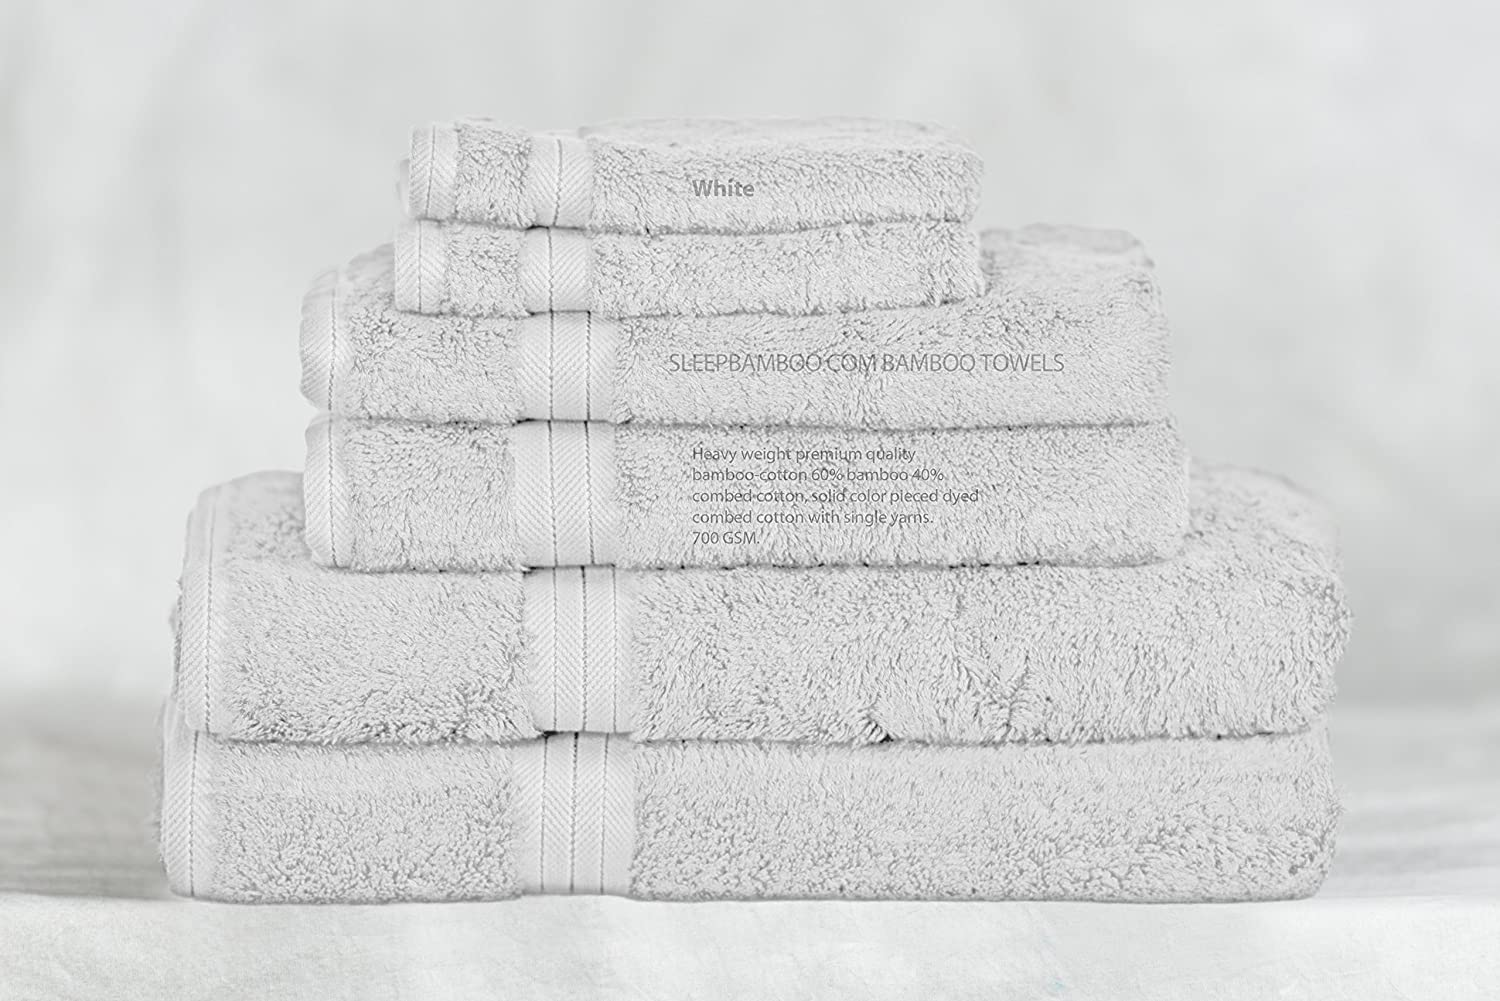 Bamboo Towel Set - White - 6 Piece Set - Available in 20 Colors SleepBamboo Towels BBTS-6